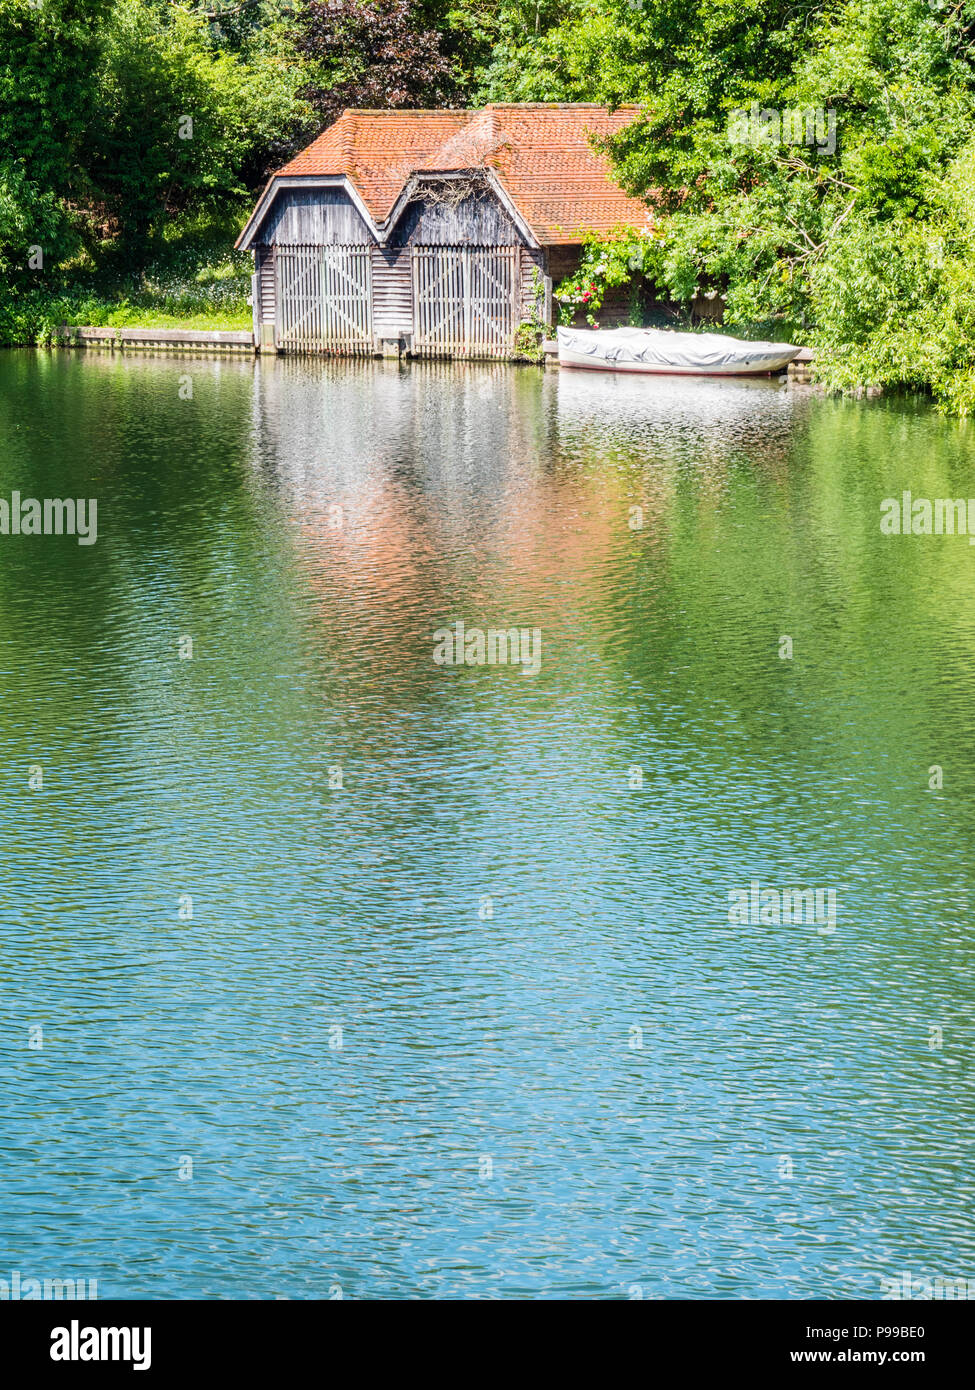 Boat House, Hambleden Lock and Weir, River Thames, Berkshire, England, UK, GB. Stock Photo